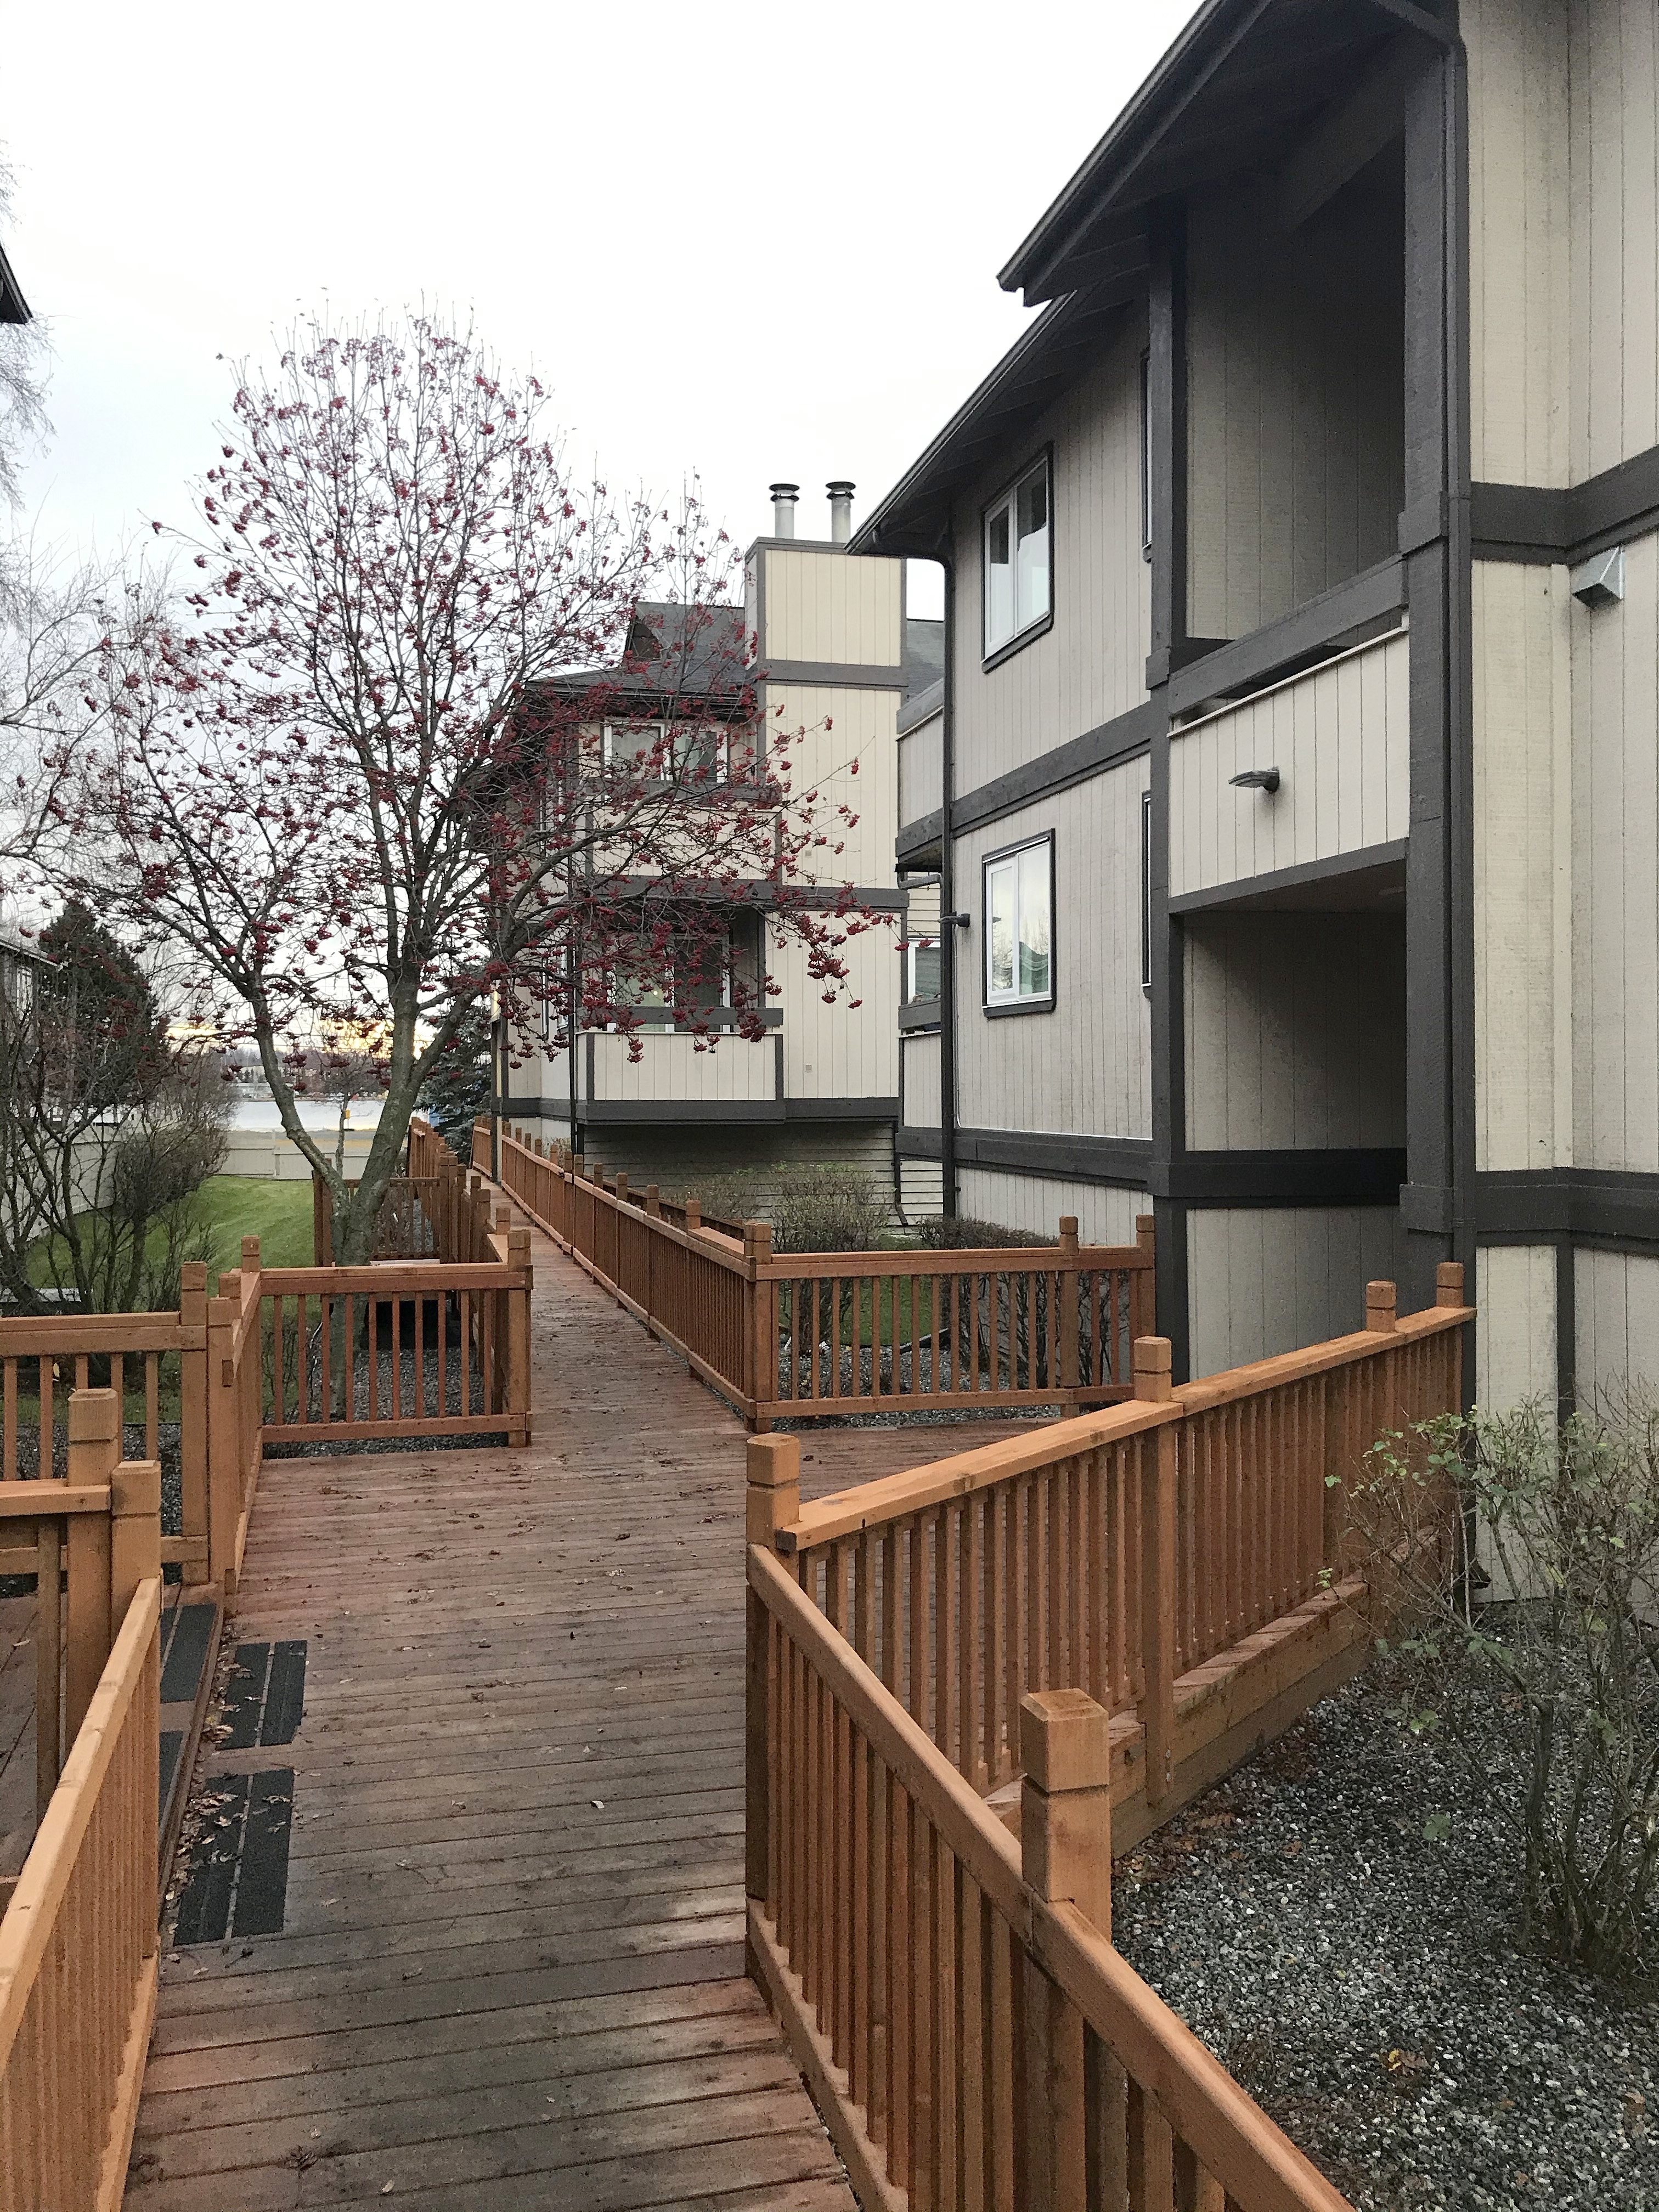 2 Bedrooms / 2 Bathrooms - Est. $1,251.00 / Month* for rent in Anchorage, AK